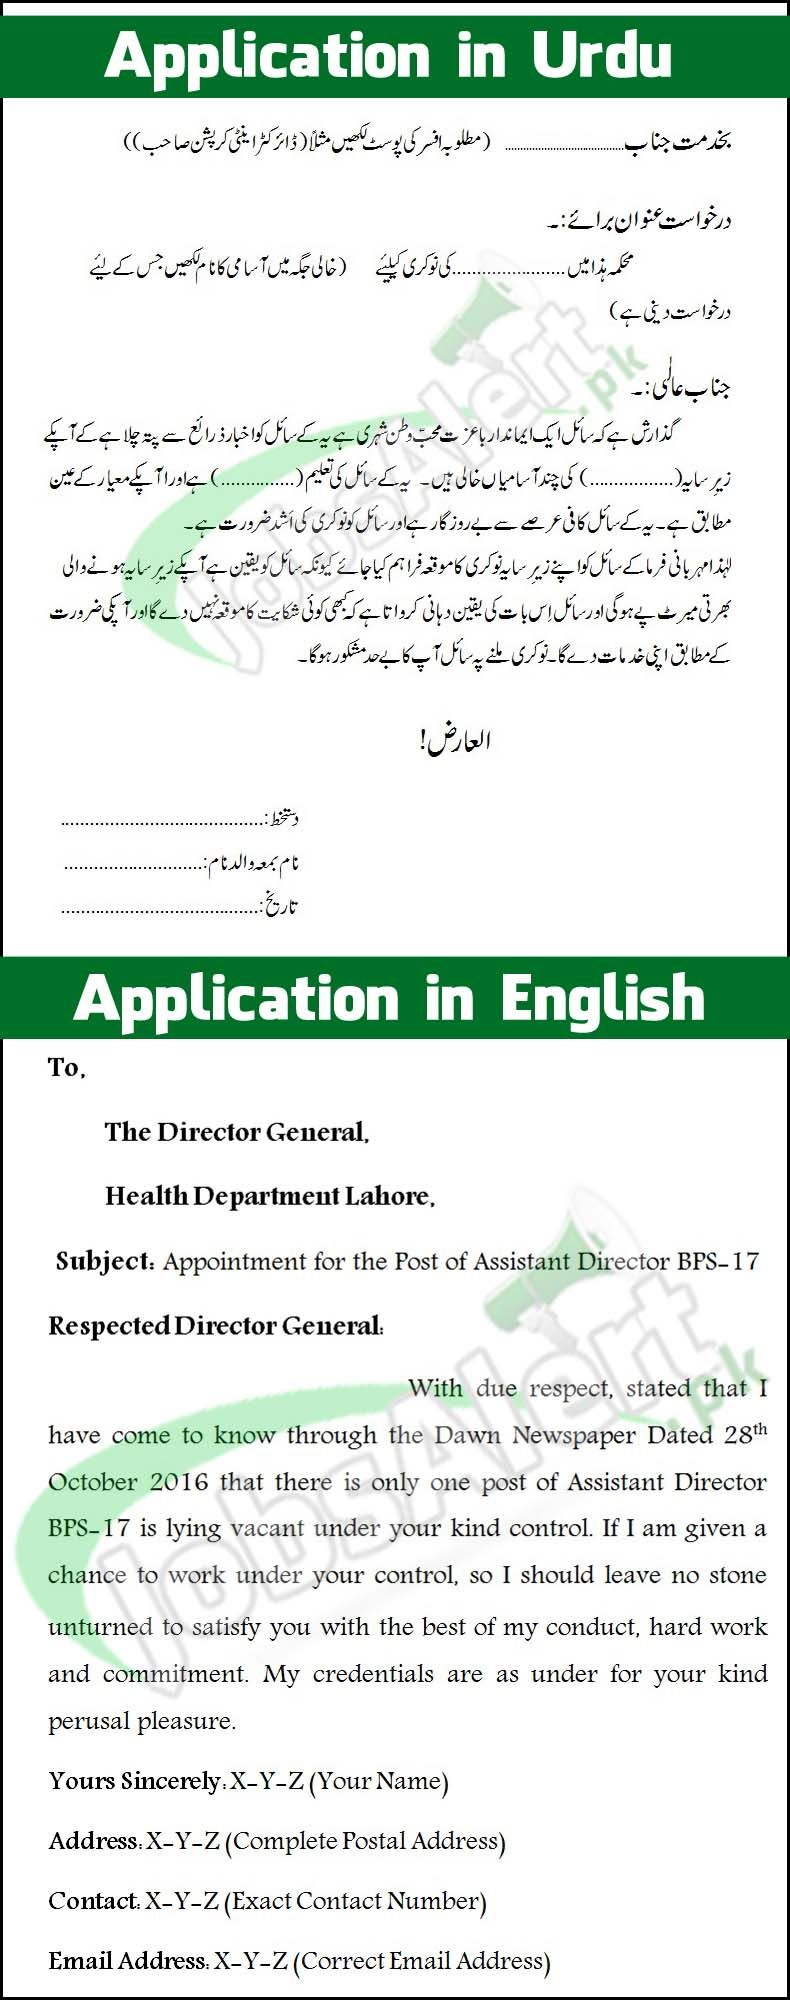 cbe792ee1e80d58e2483962f83fe3ddc - How To Write Application In Urdu